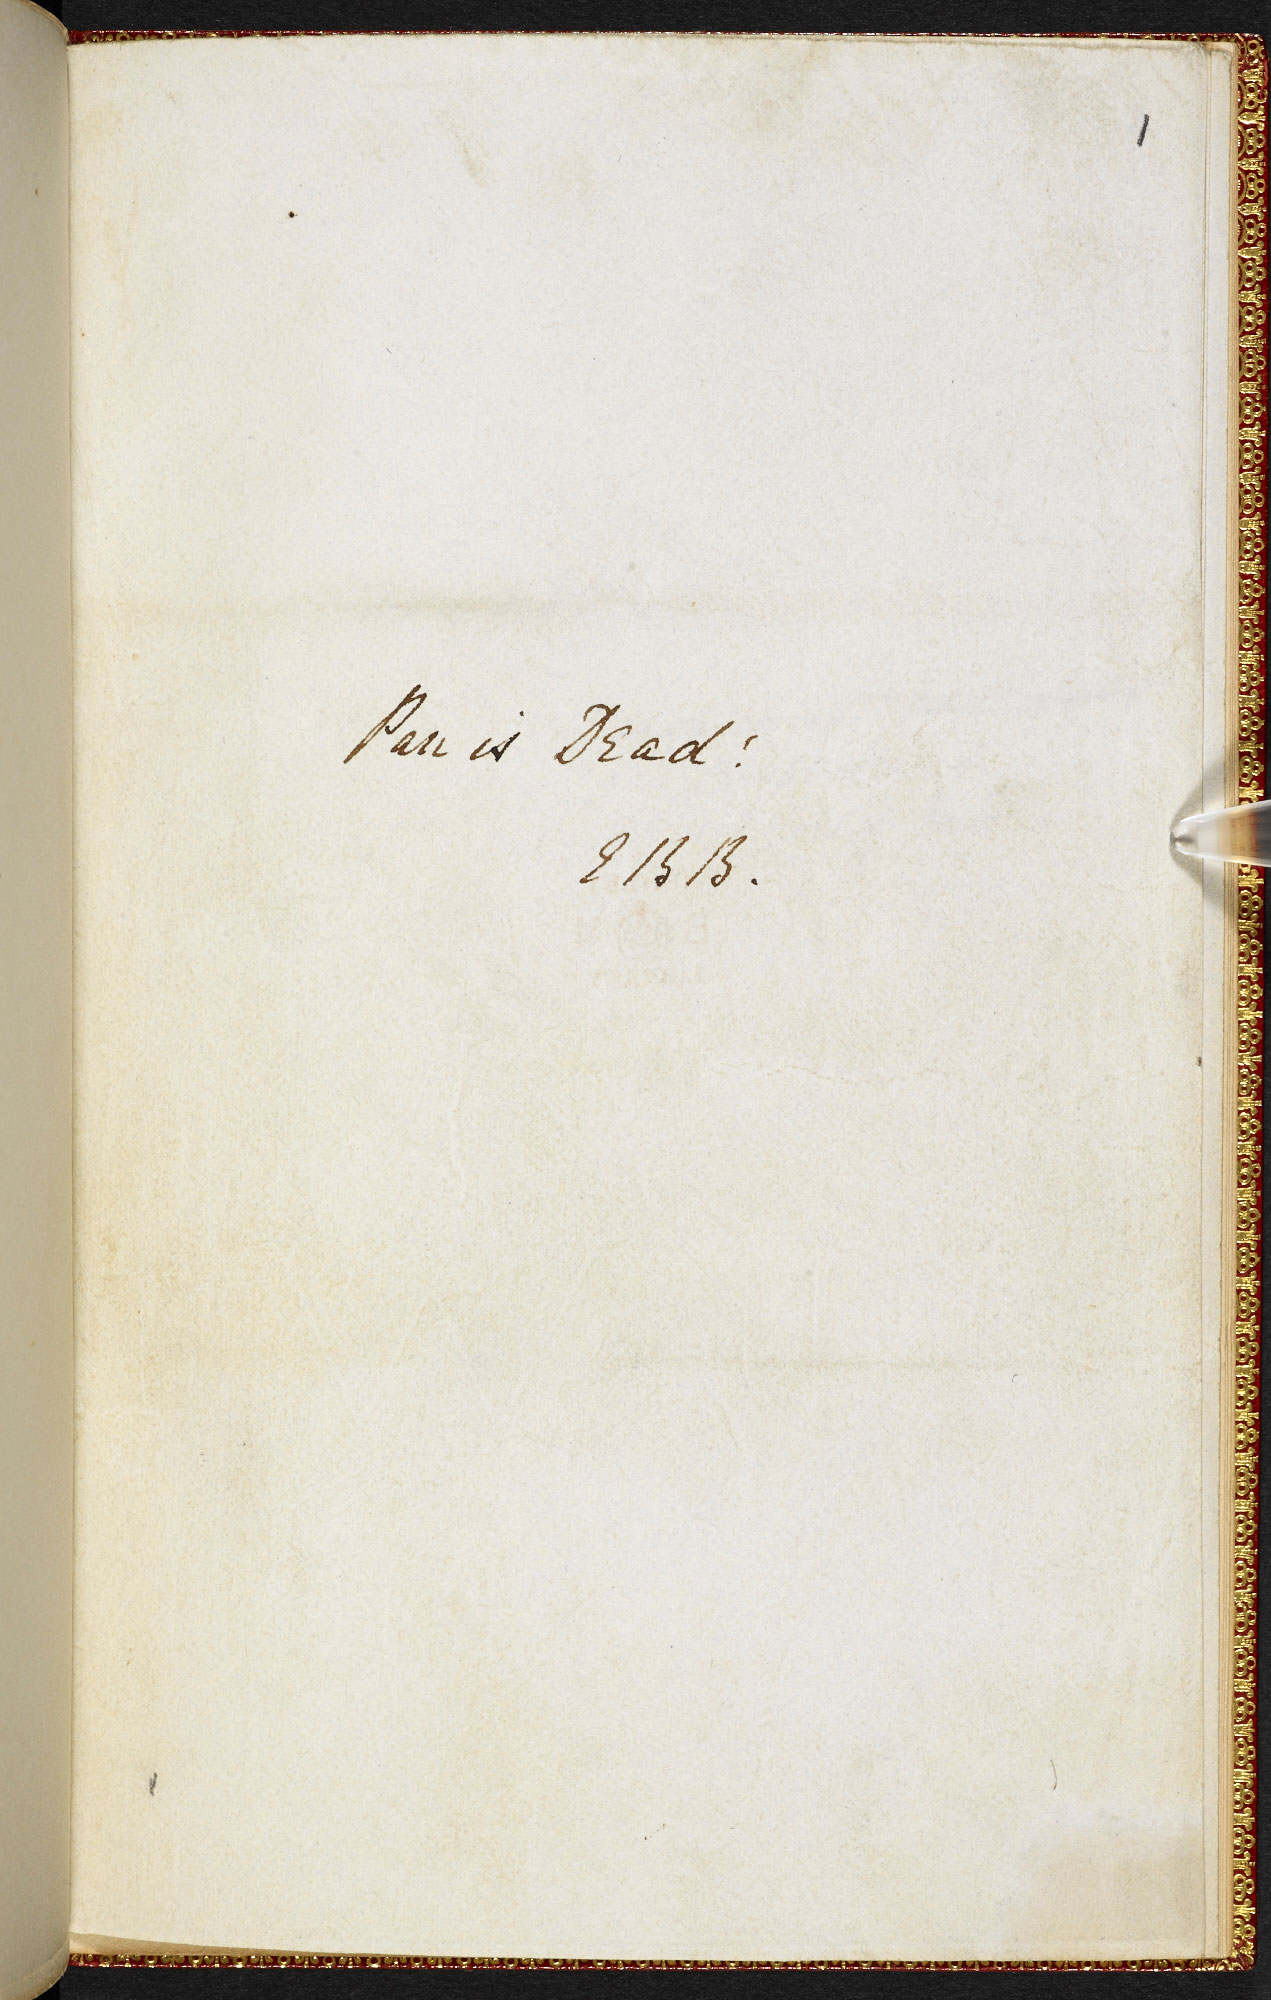 Manuscript, with revisions, of Elizabeth Barrett Browning's 'Pan is Dead!'